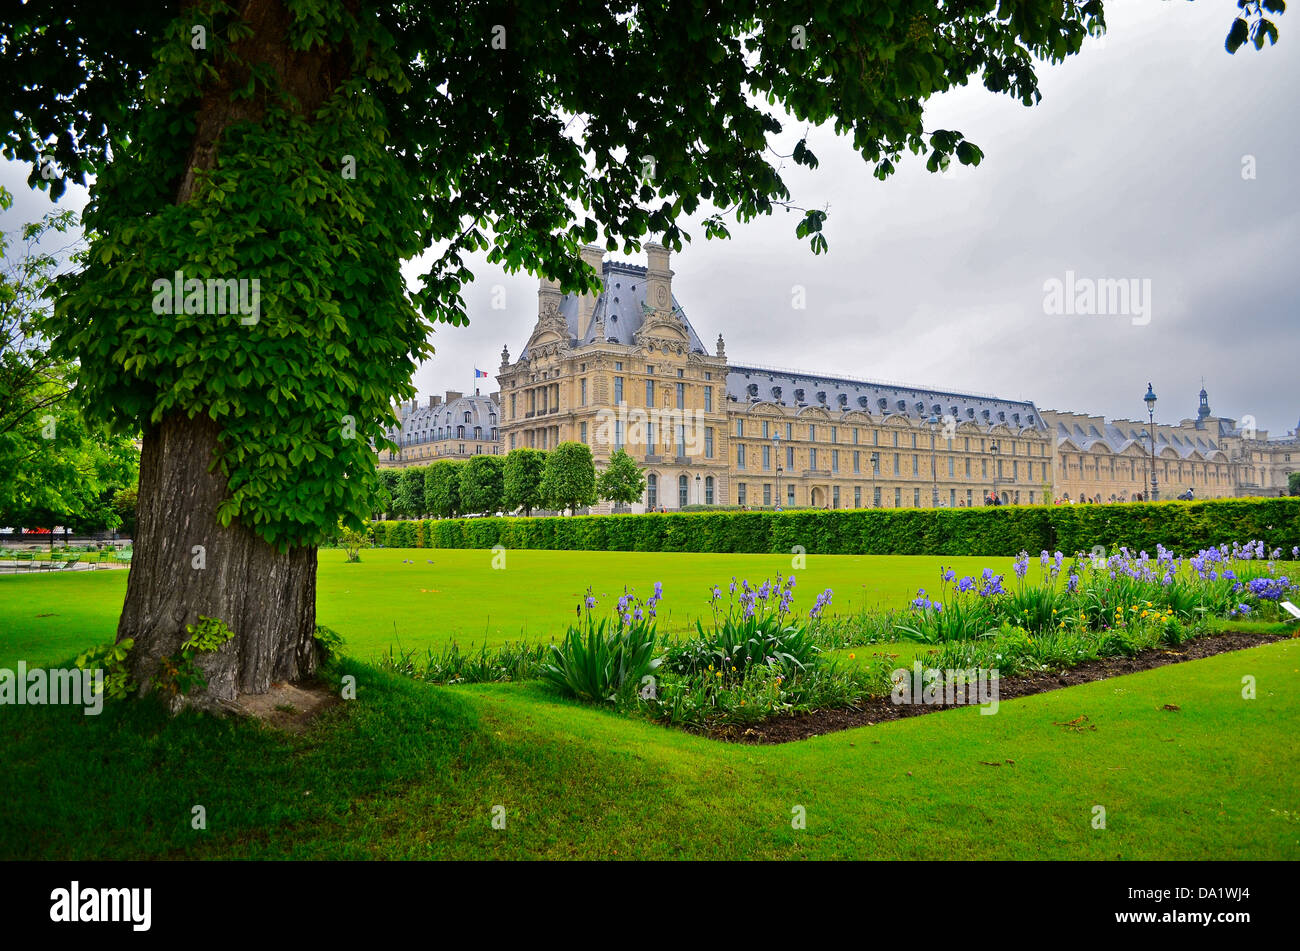 Louvre, Paris, exterior view from Tuileries gardens with cloudy sky and tree Stock Photo